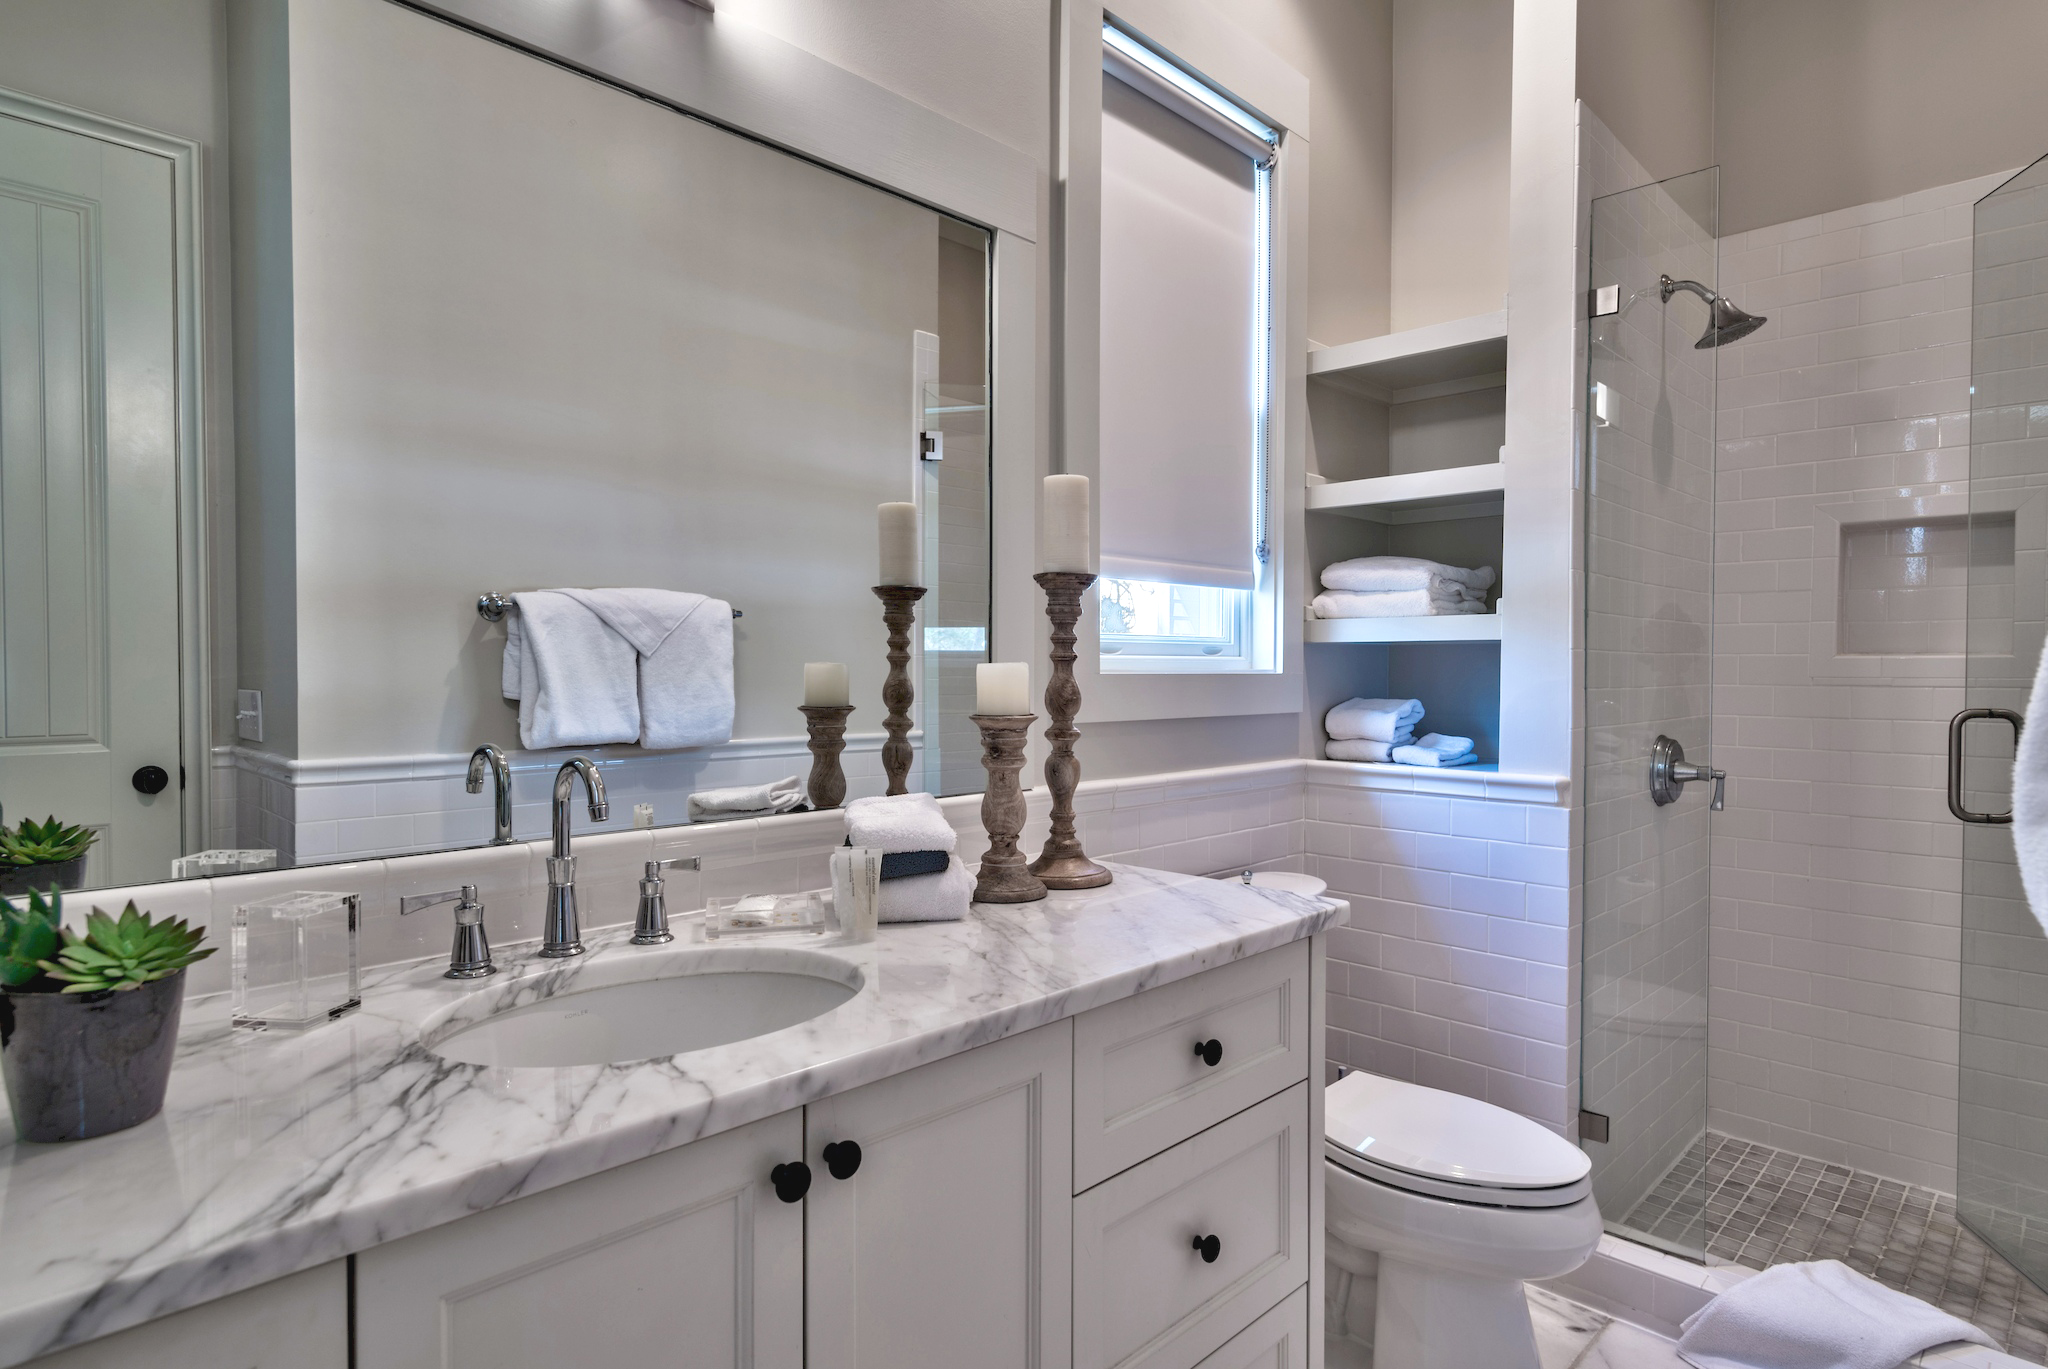 King guest room ensuite bath with a beautiful, custom, stand-up shower